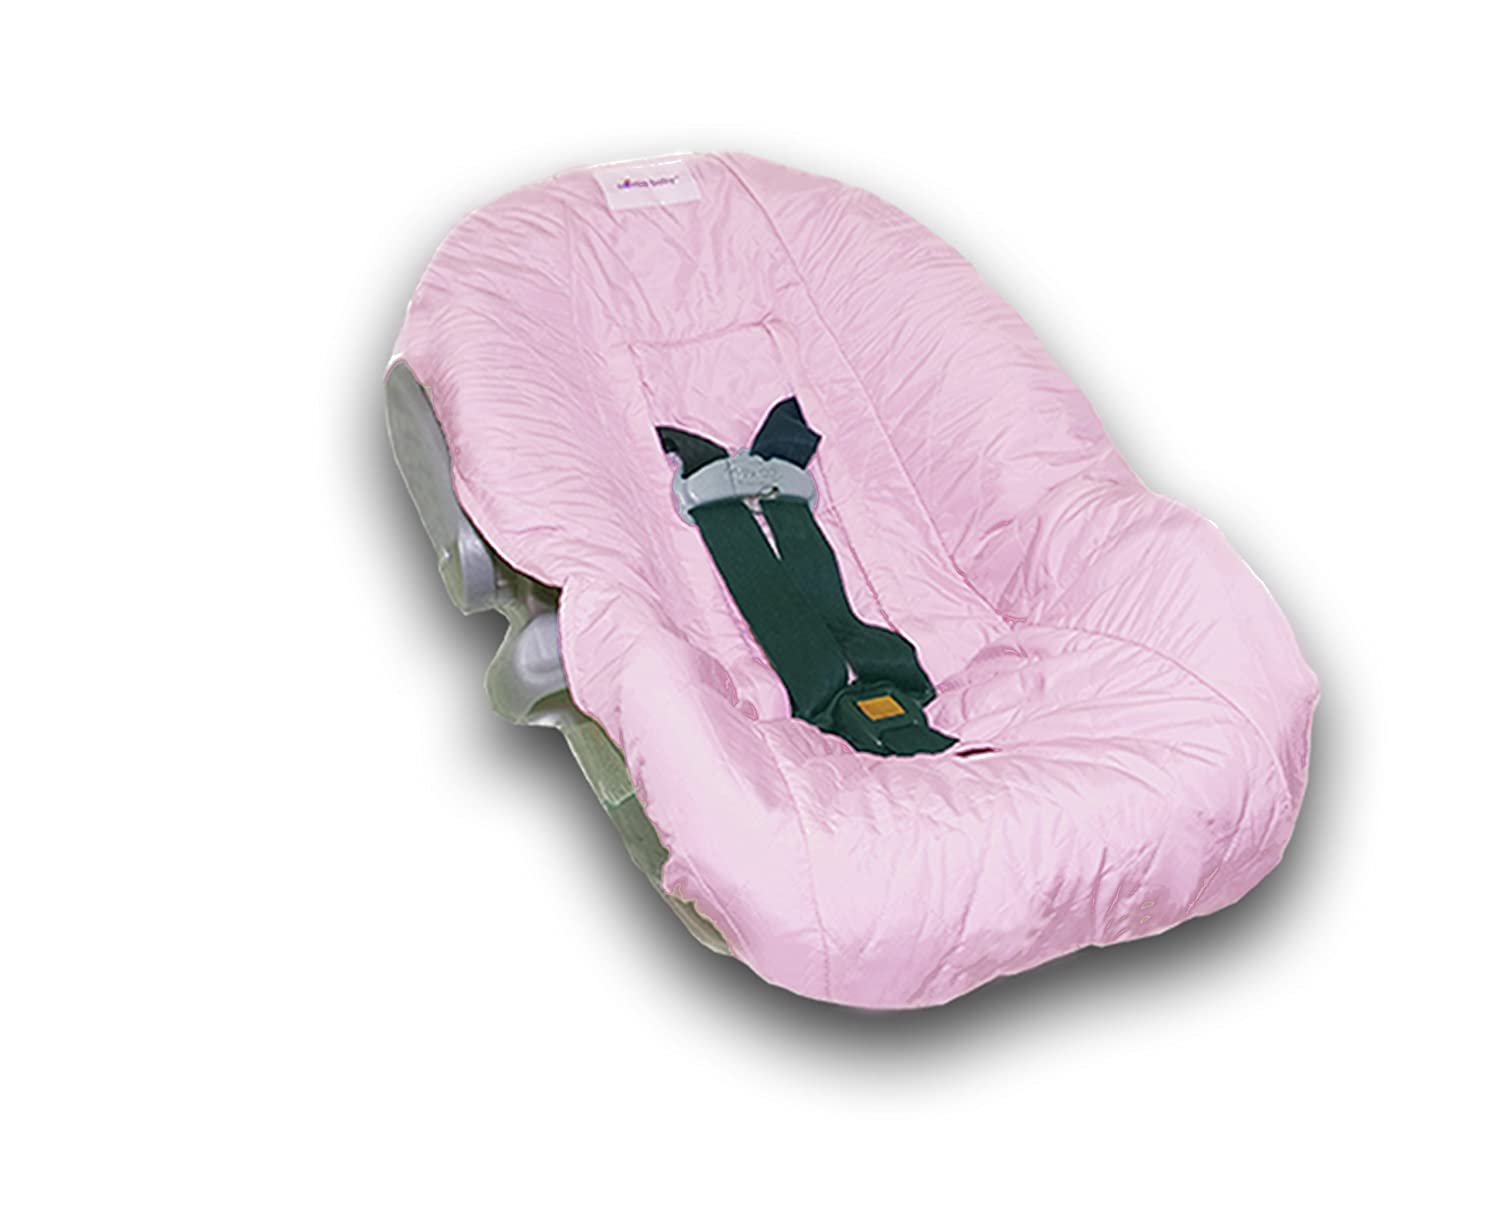 Nomie Baby Infant Car Seat Cover, Infant Baby Pink Pink by Nomie Baby B0044PWNMK, グレースシトラス:cf3d8a11 --- yogabeach.store